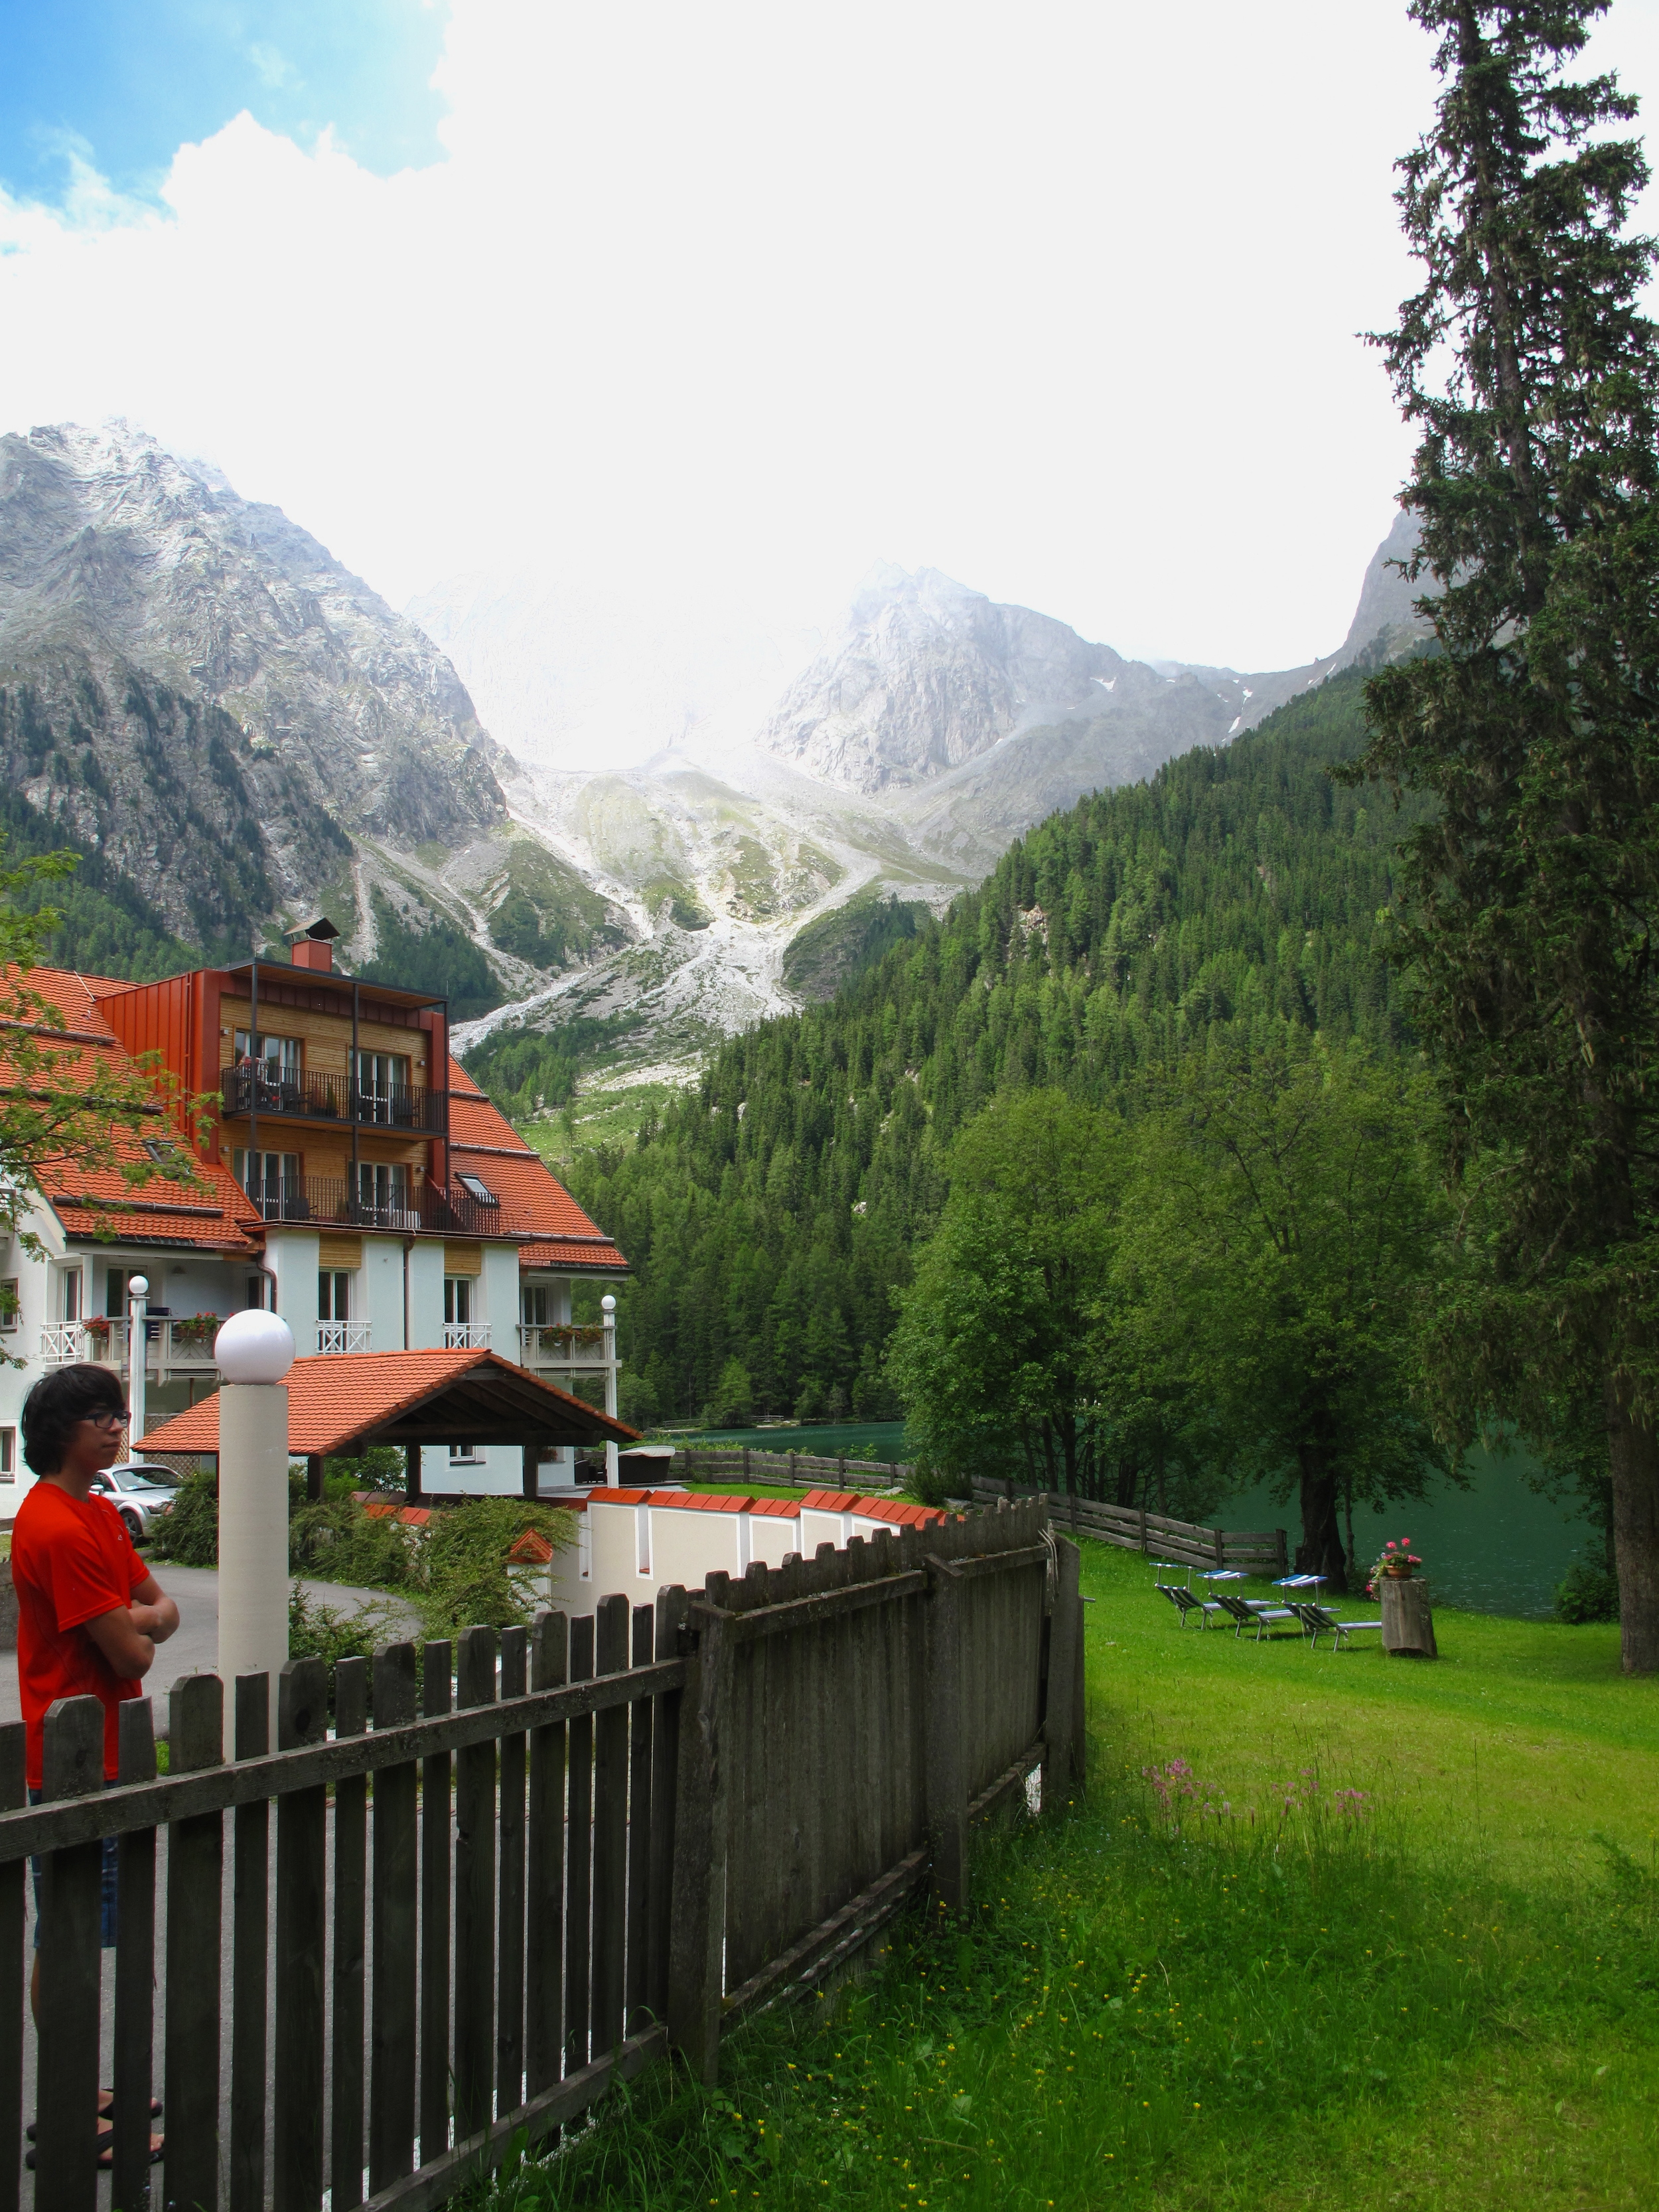 Tyrol Valley Austria - mountains, lakes and beautiful wooden houses